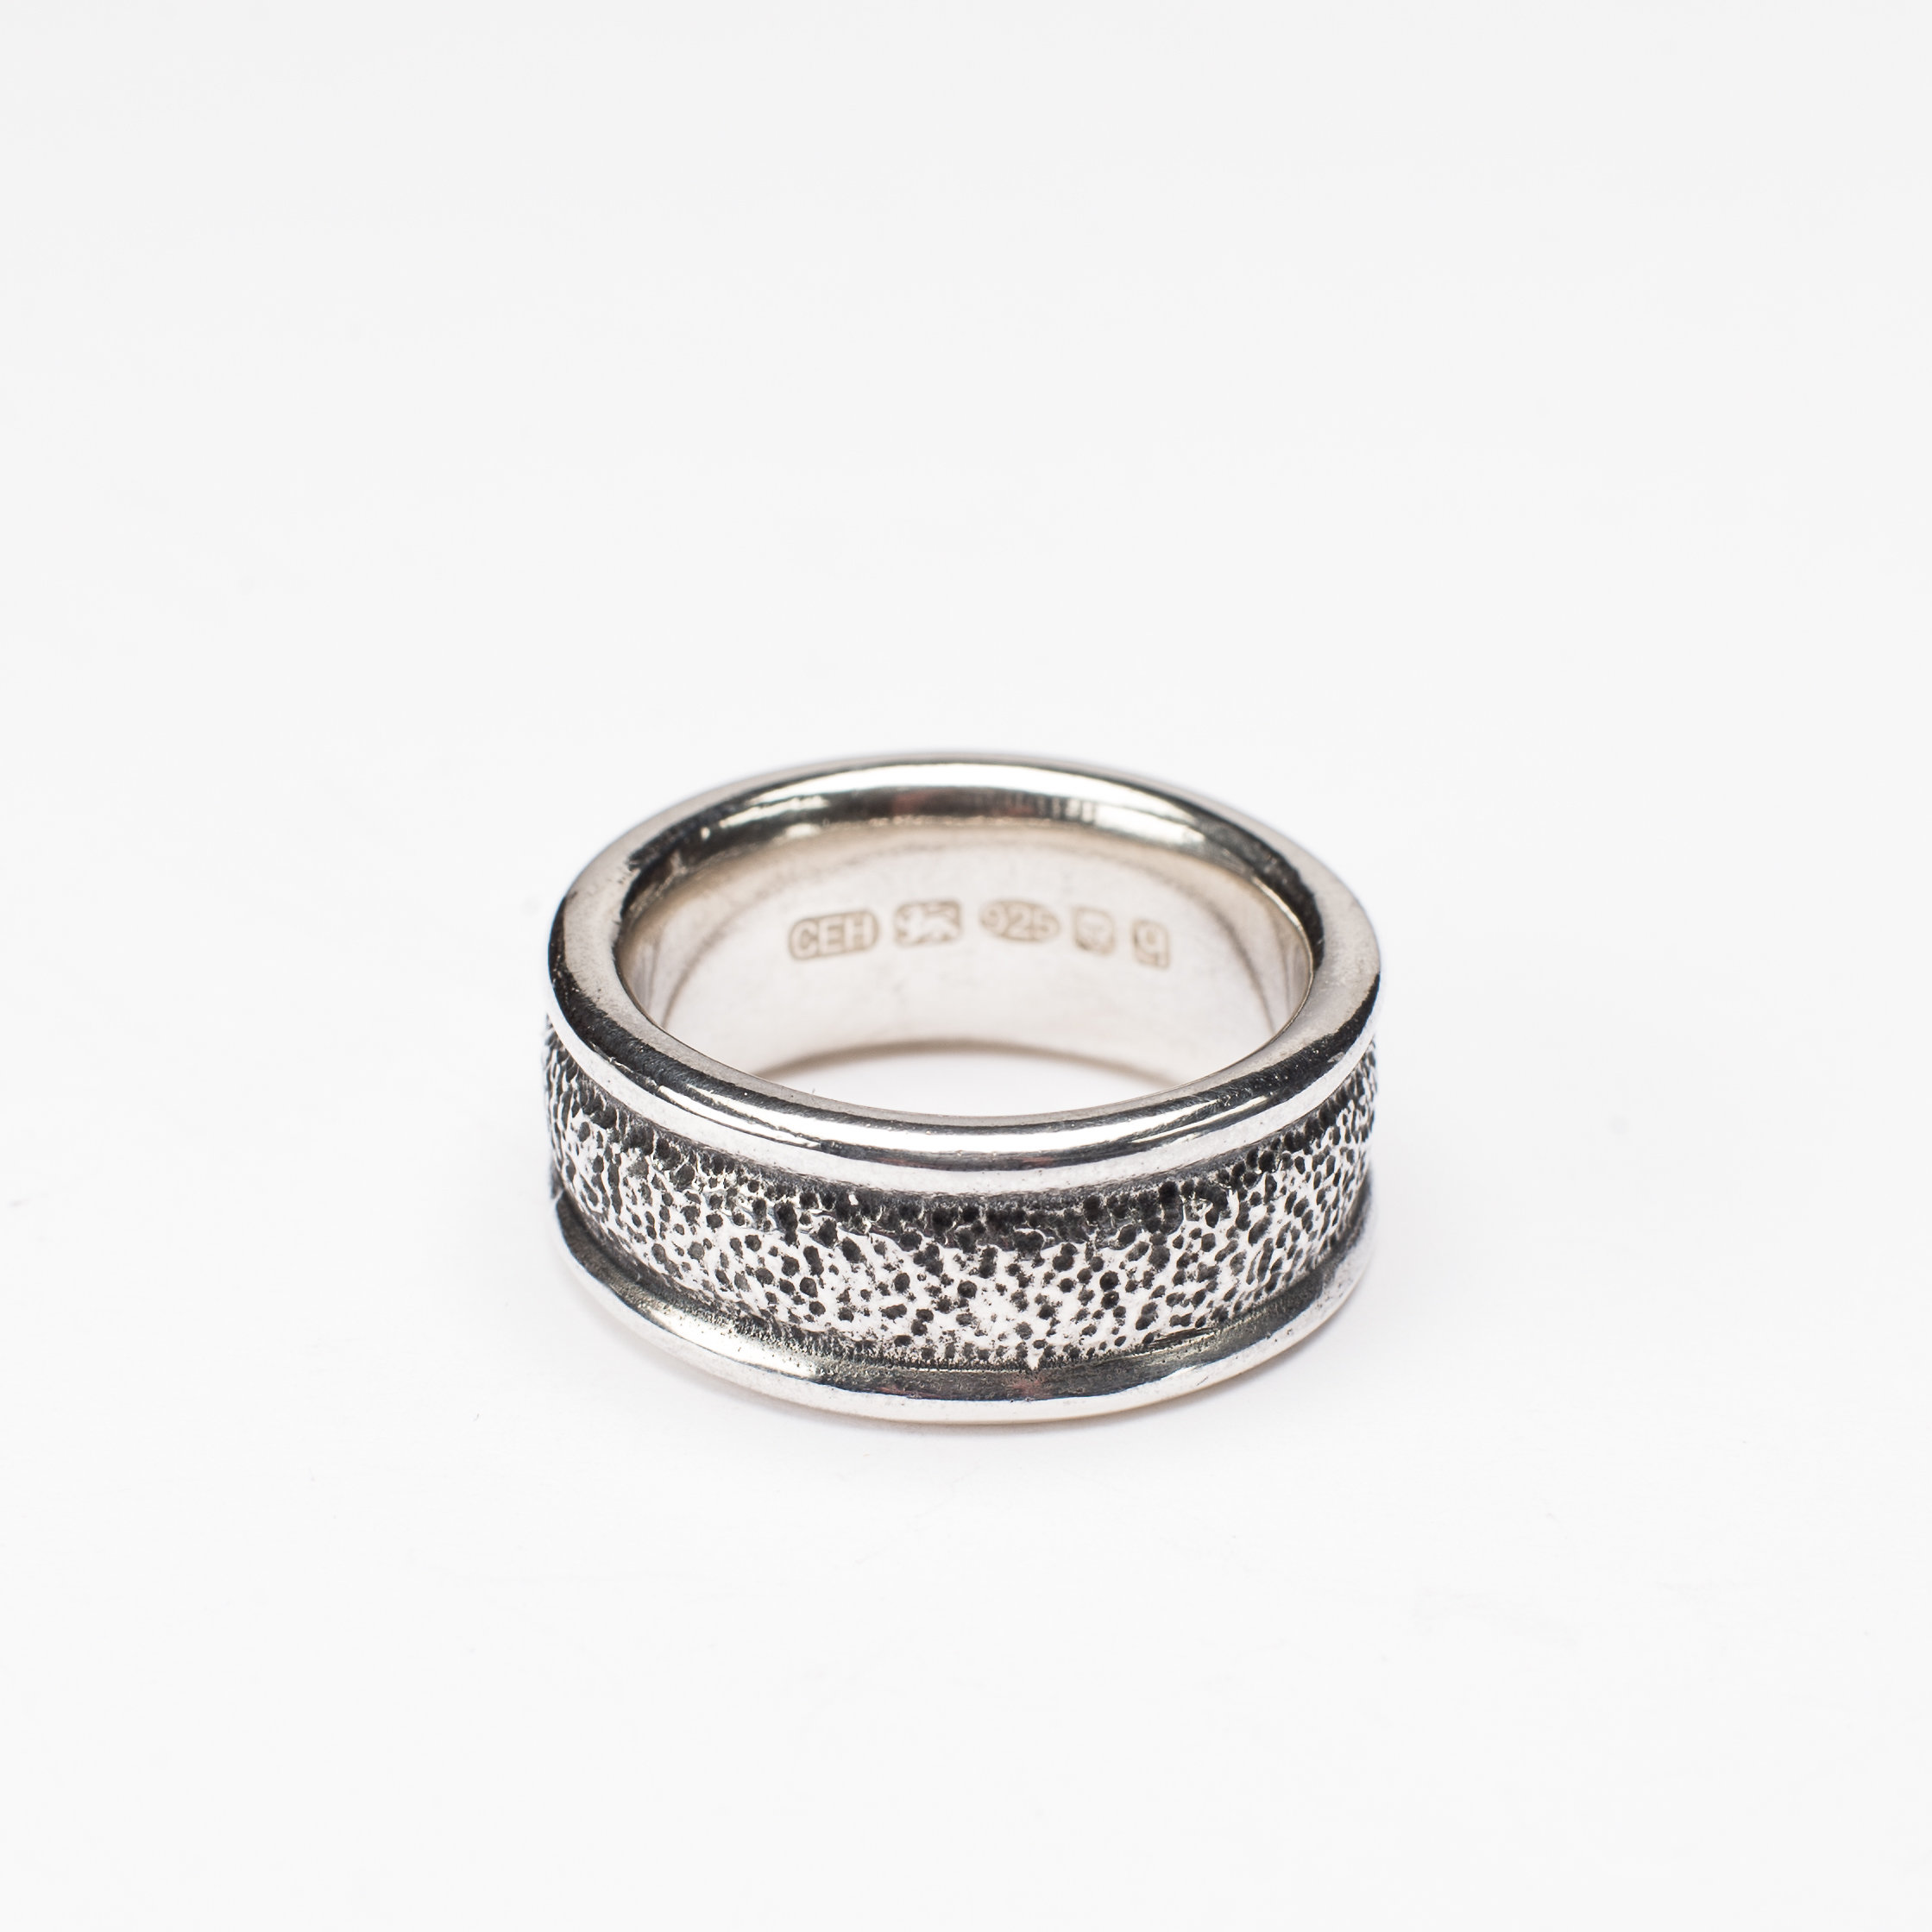 Catherine Hills Jewellery- Mans Textured Band Ring - Silver and Oxidised Silver .jpg